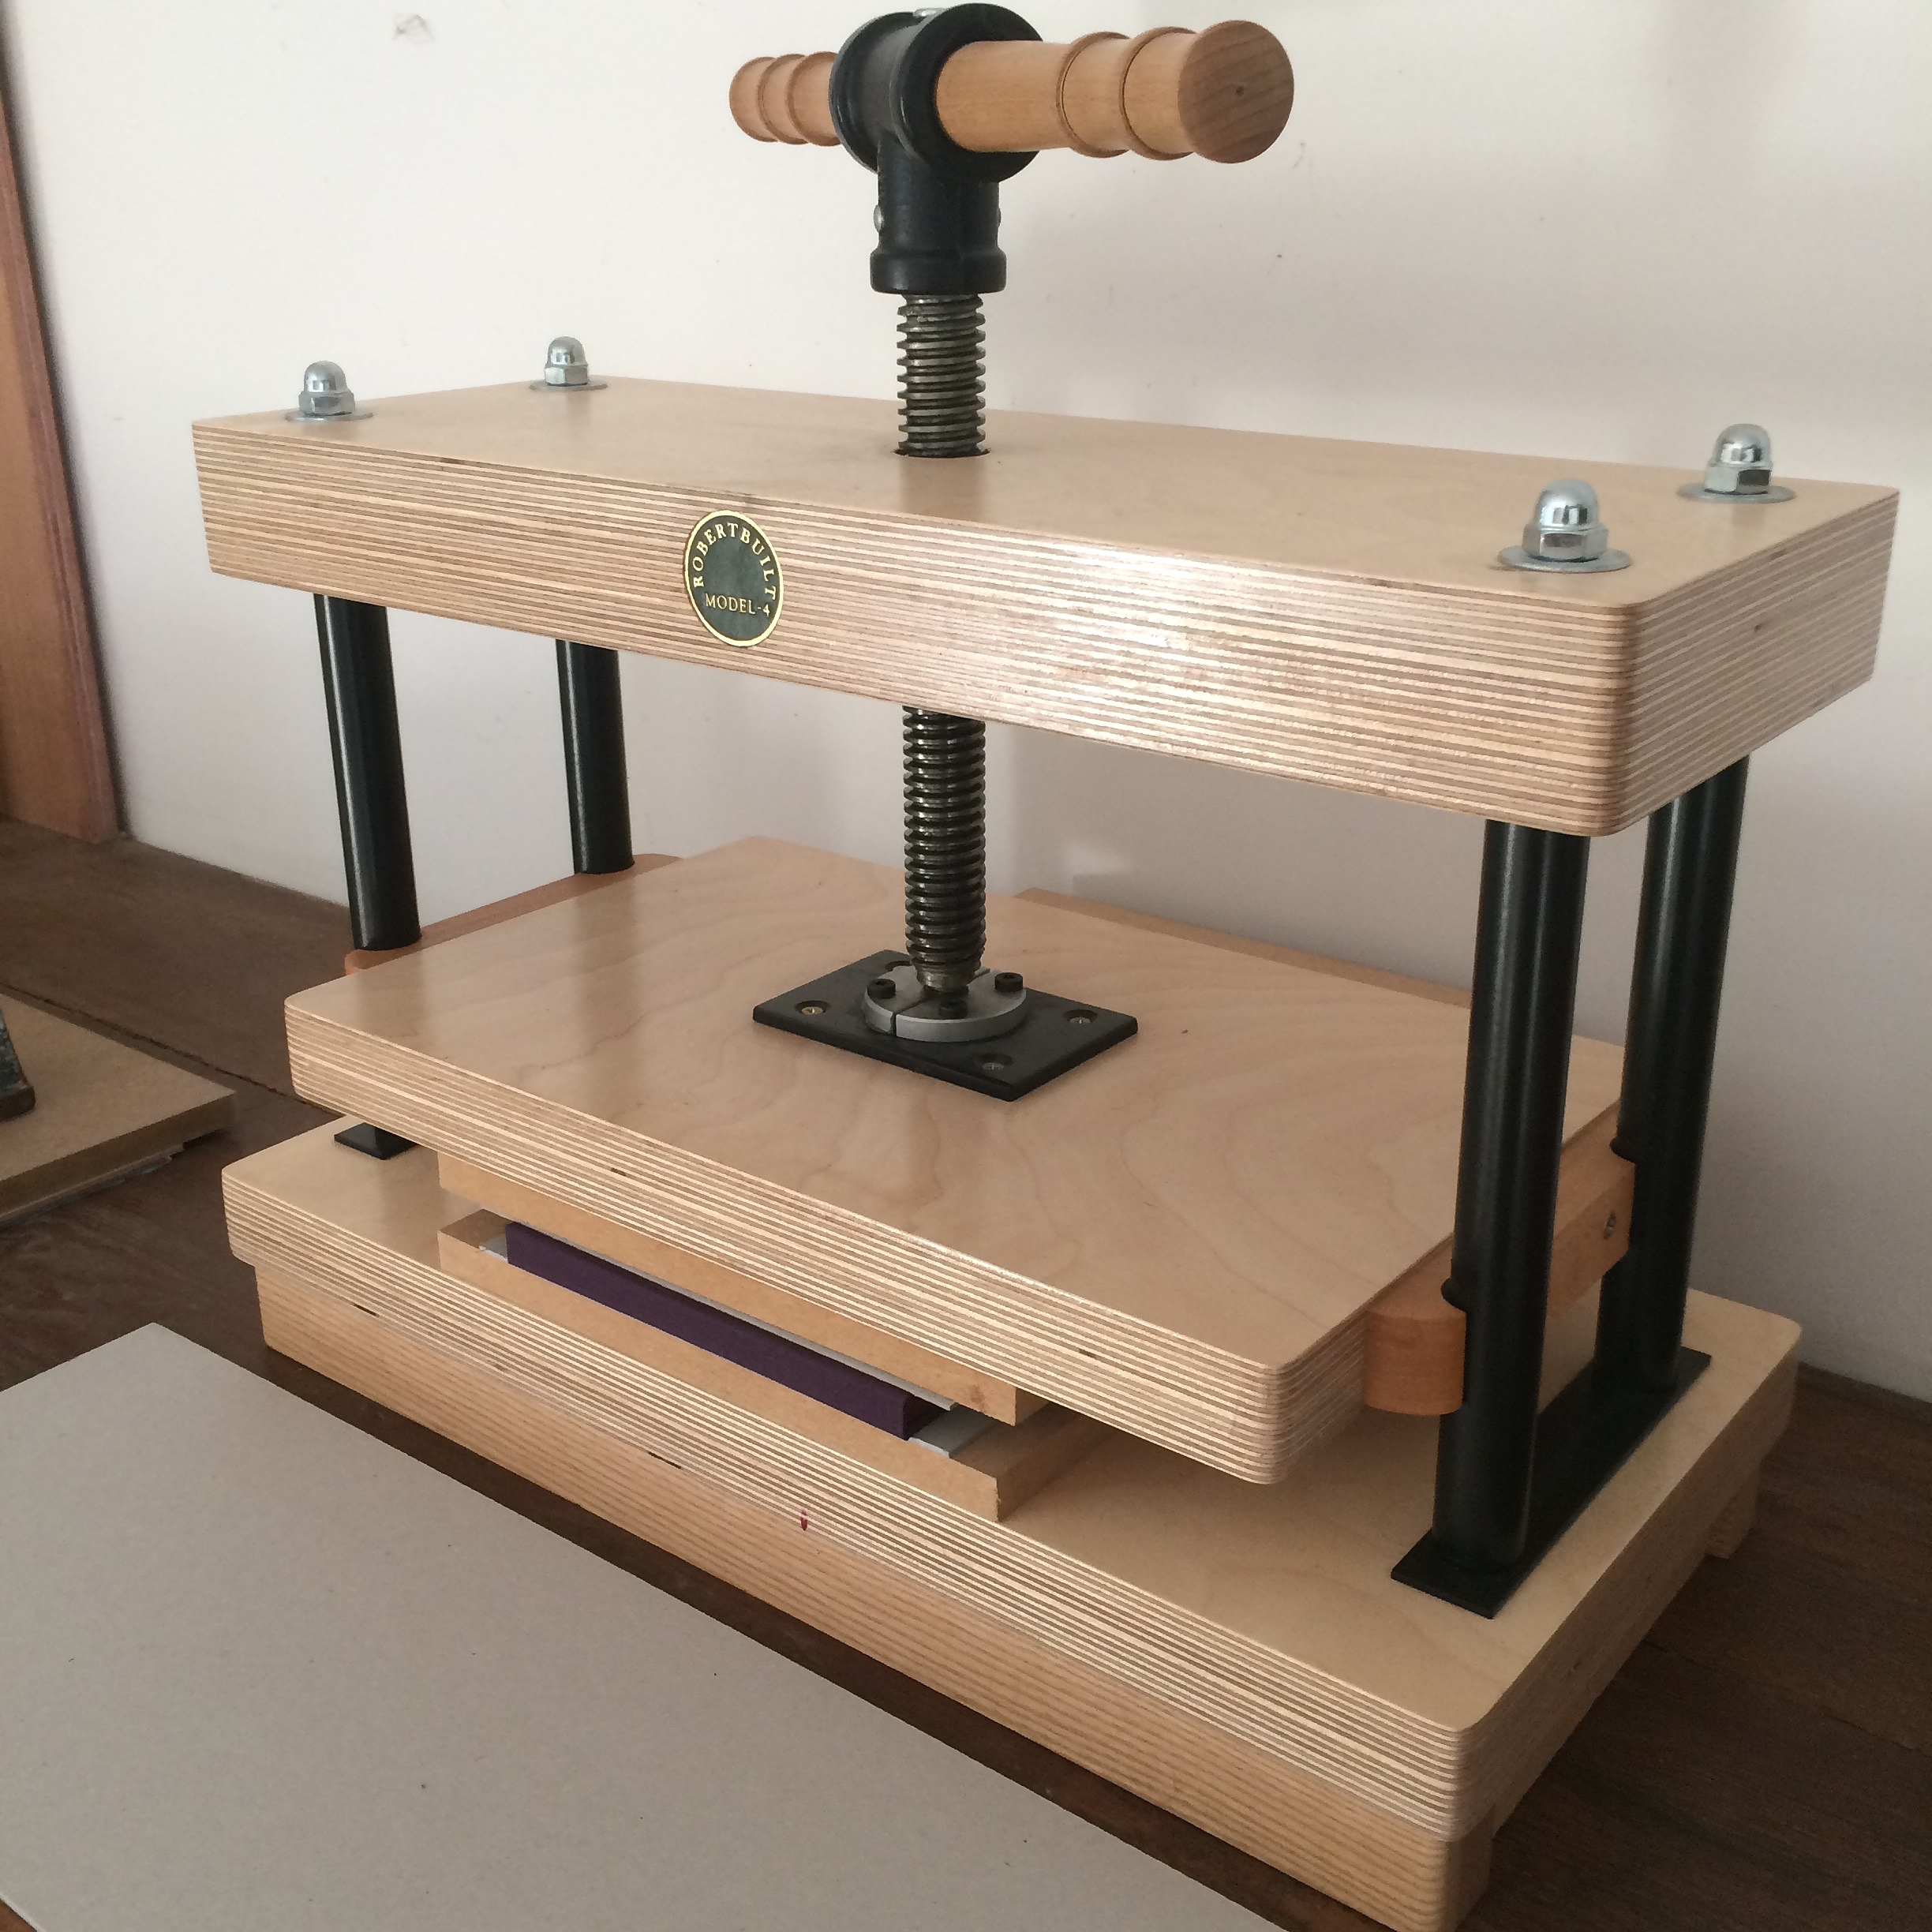 Éilís' bookbinding press